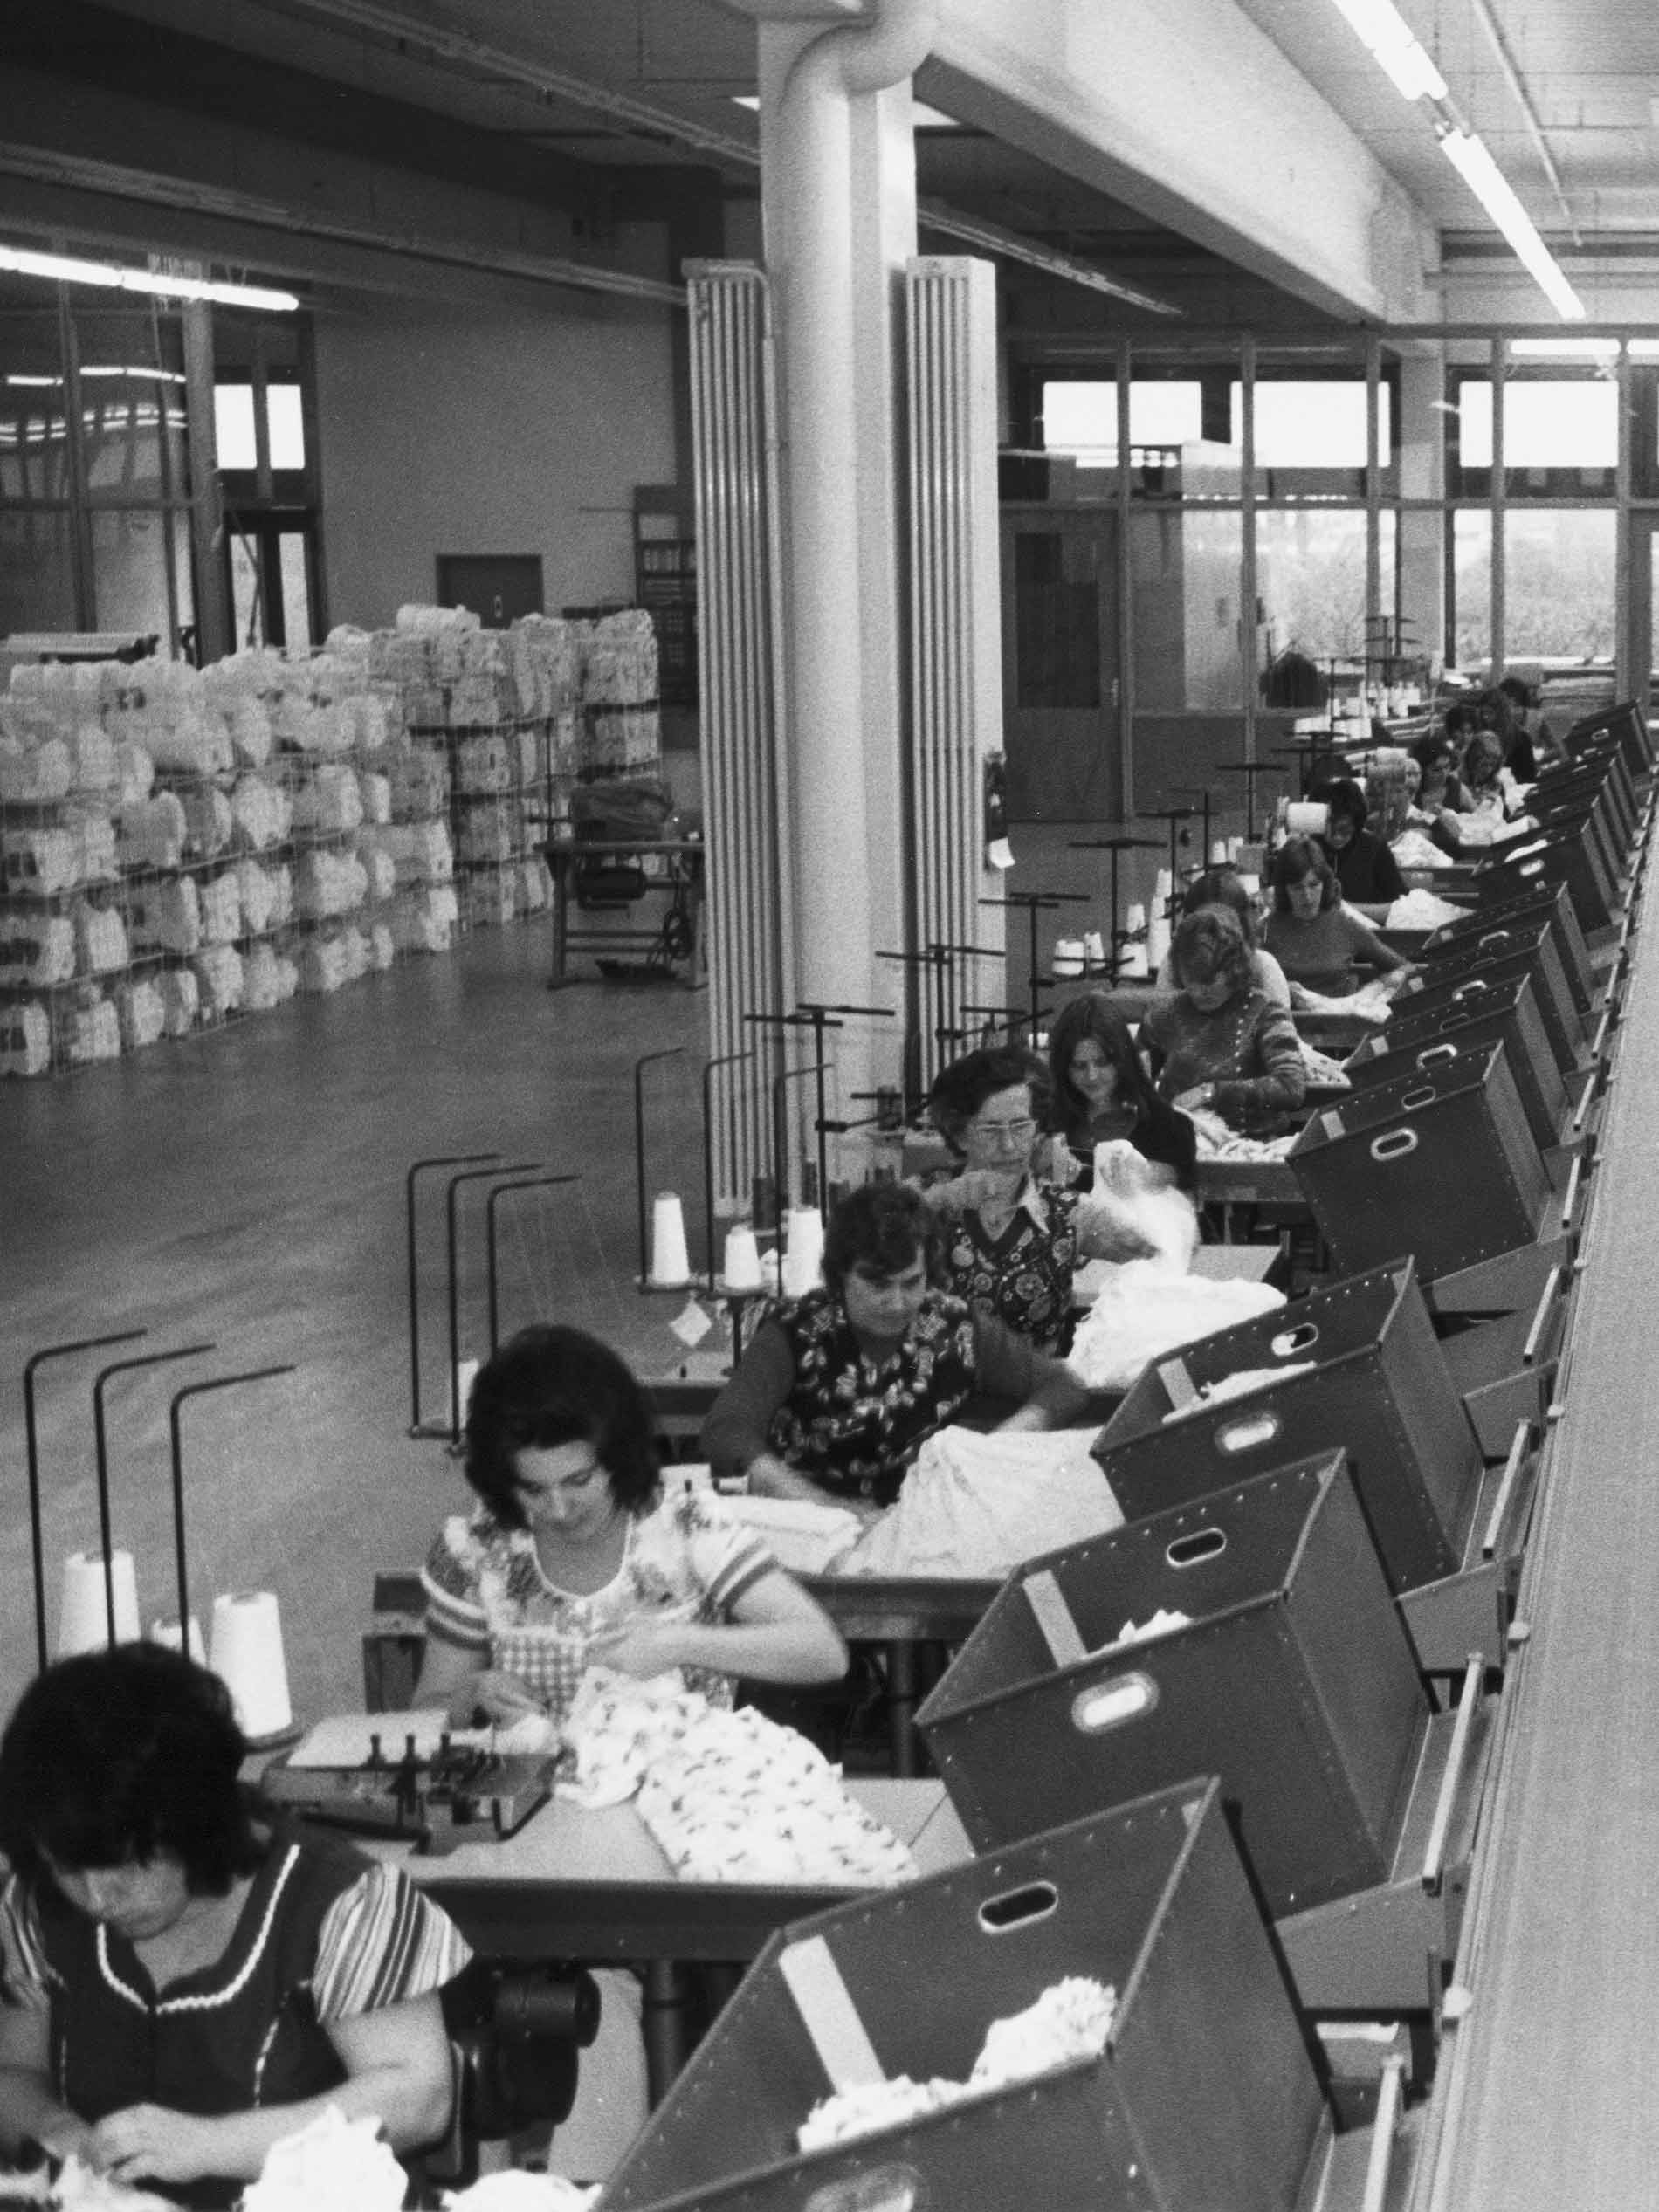 historics photography from the sewing room of the company, black and white photograph with rows of seamstresses and boxes containing products | mey®